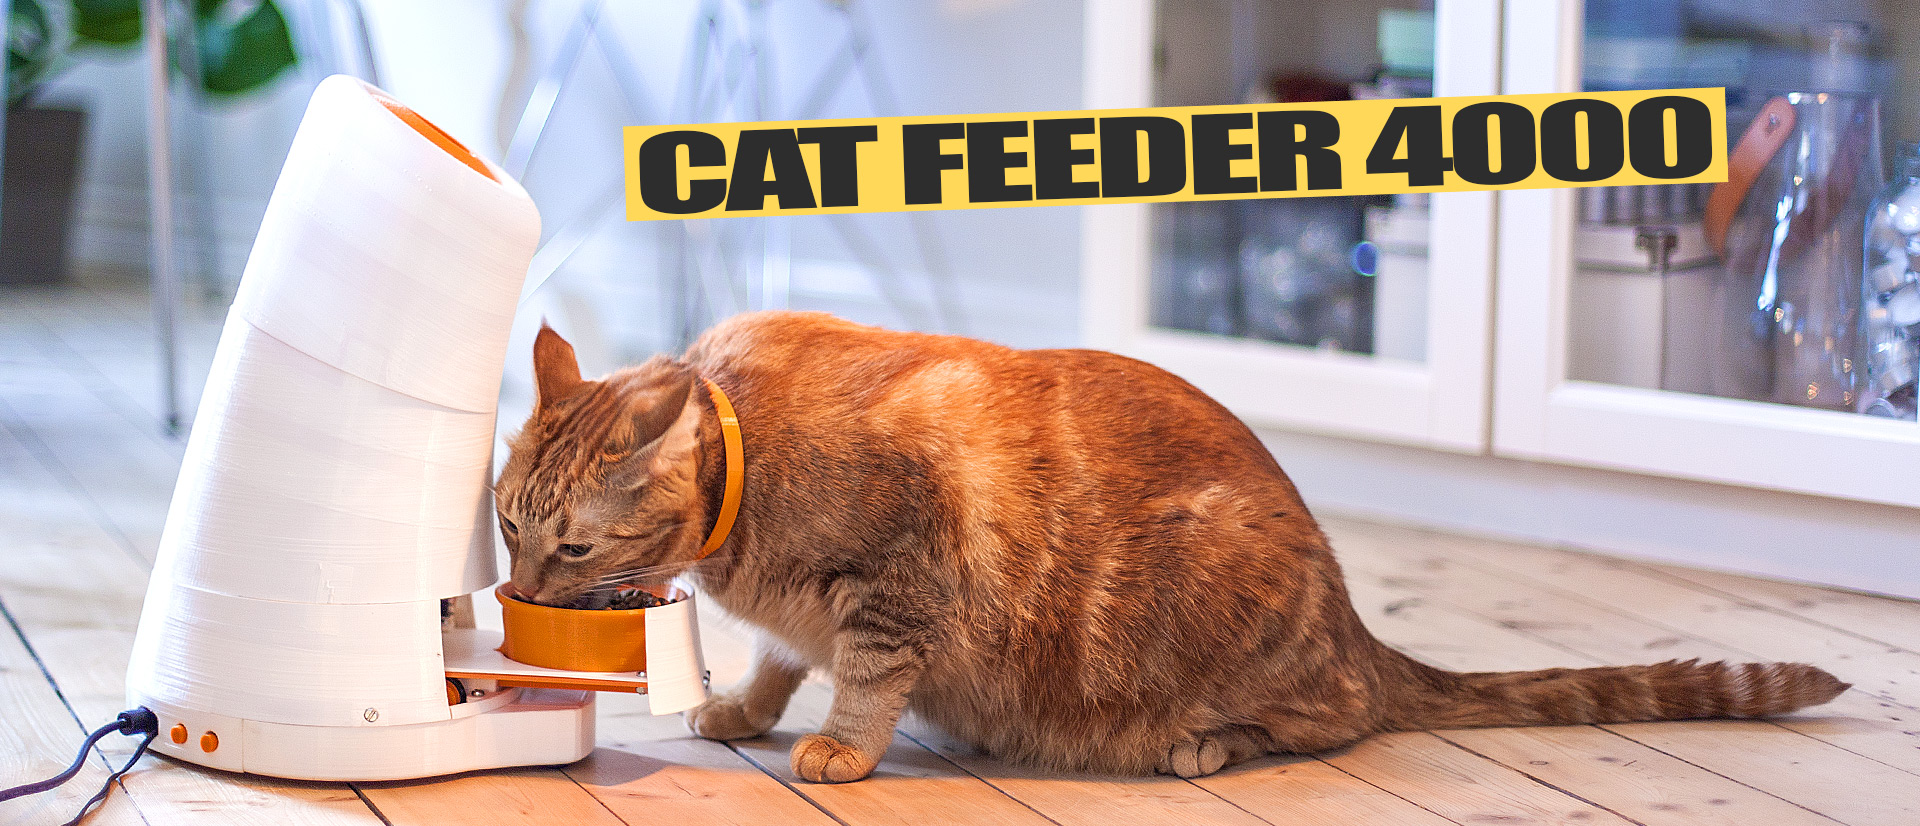 Justpressprint 3d printed Cat Feeder cat eating